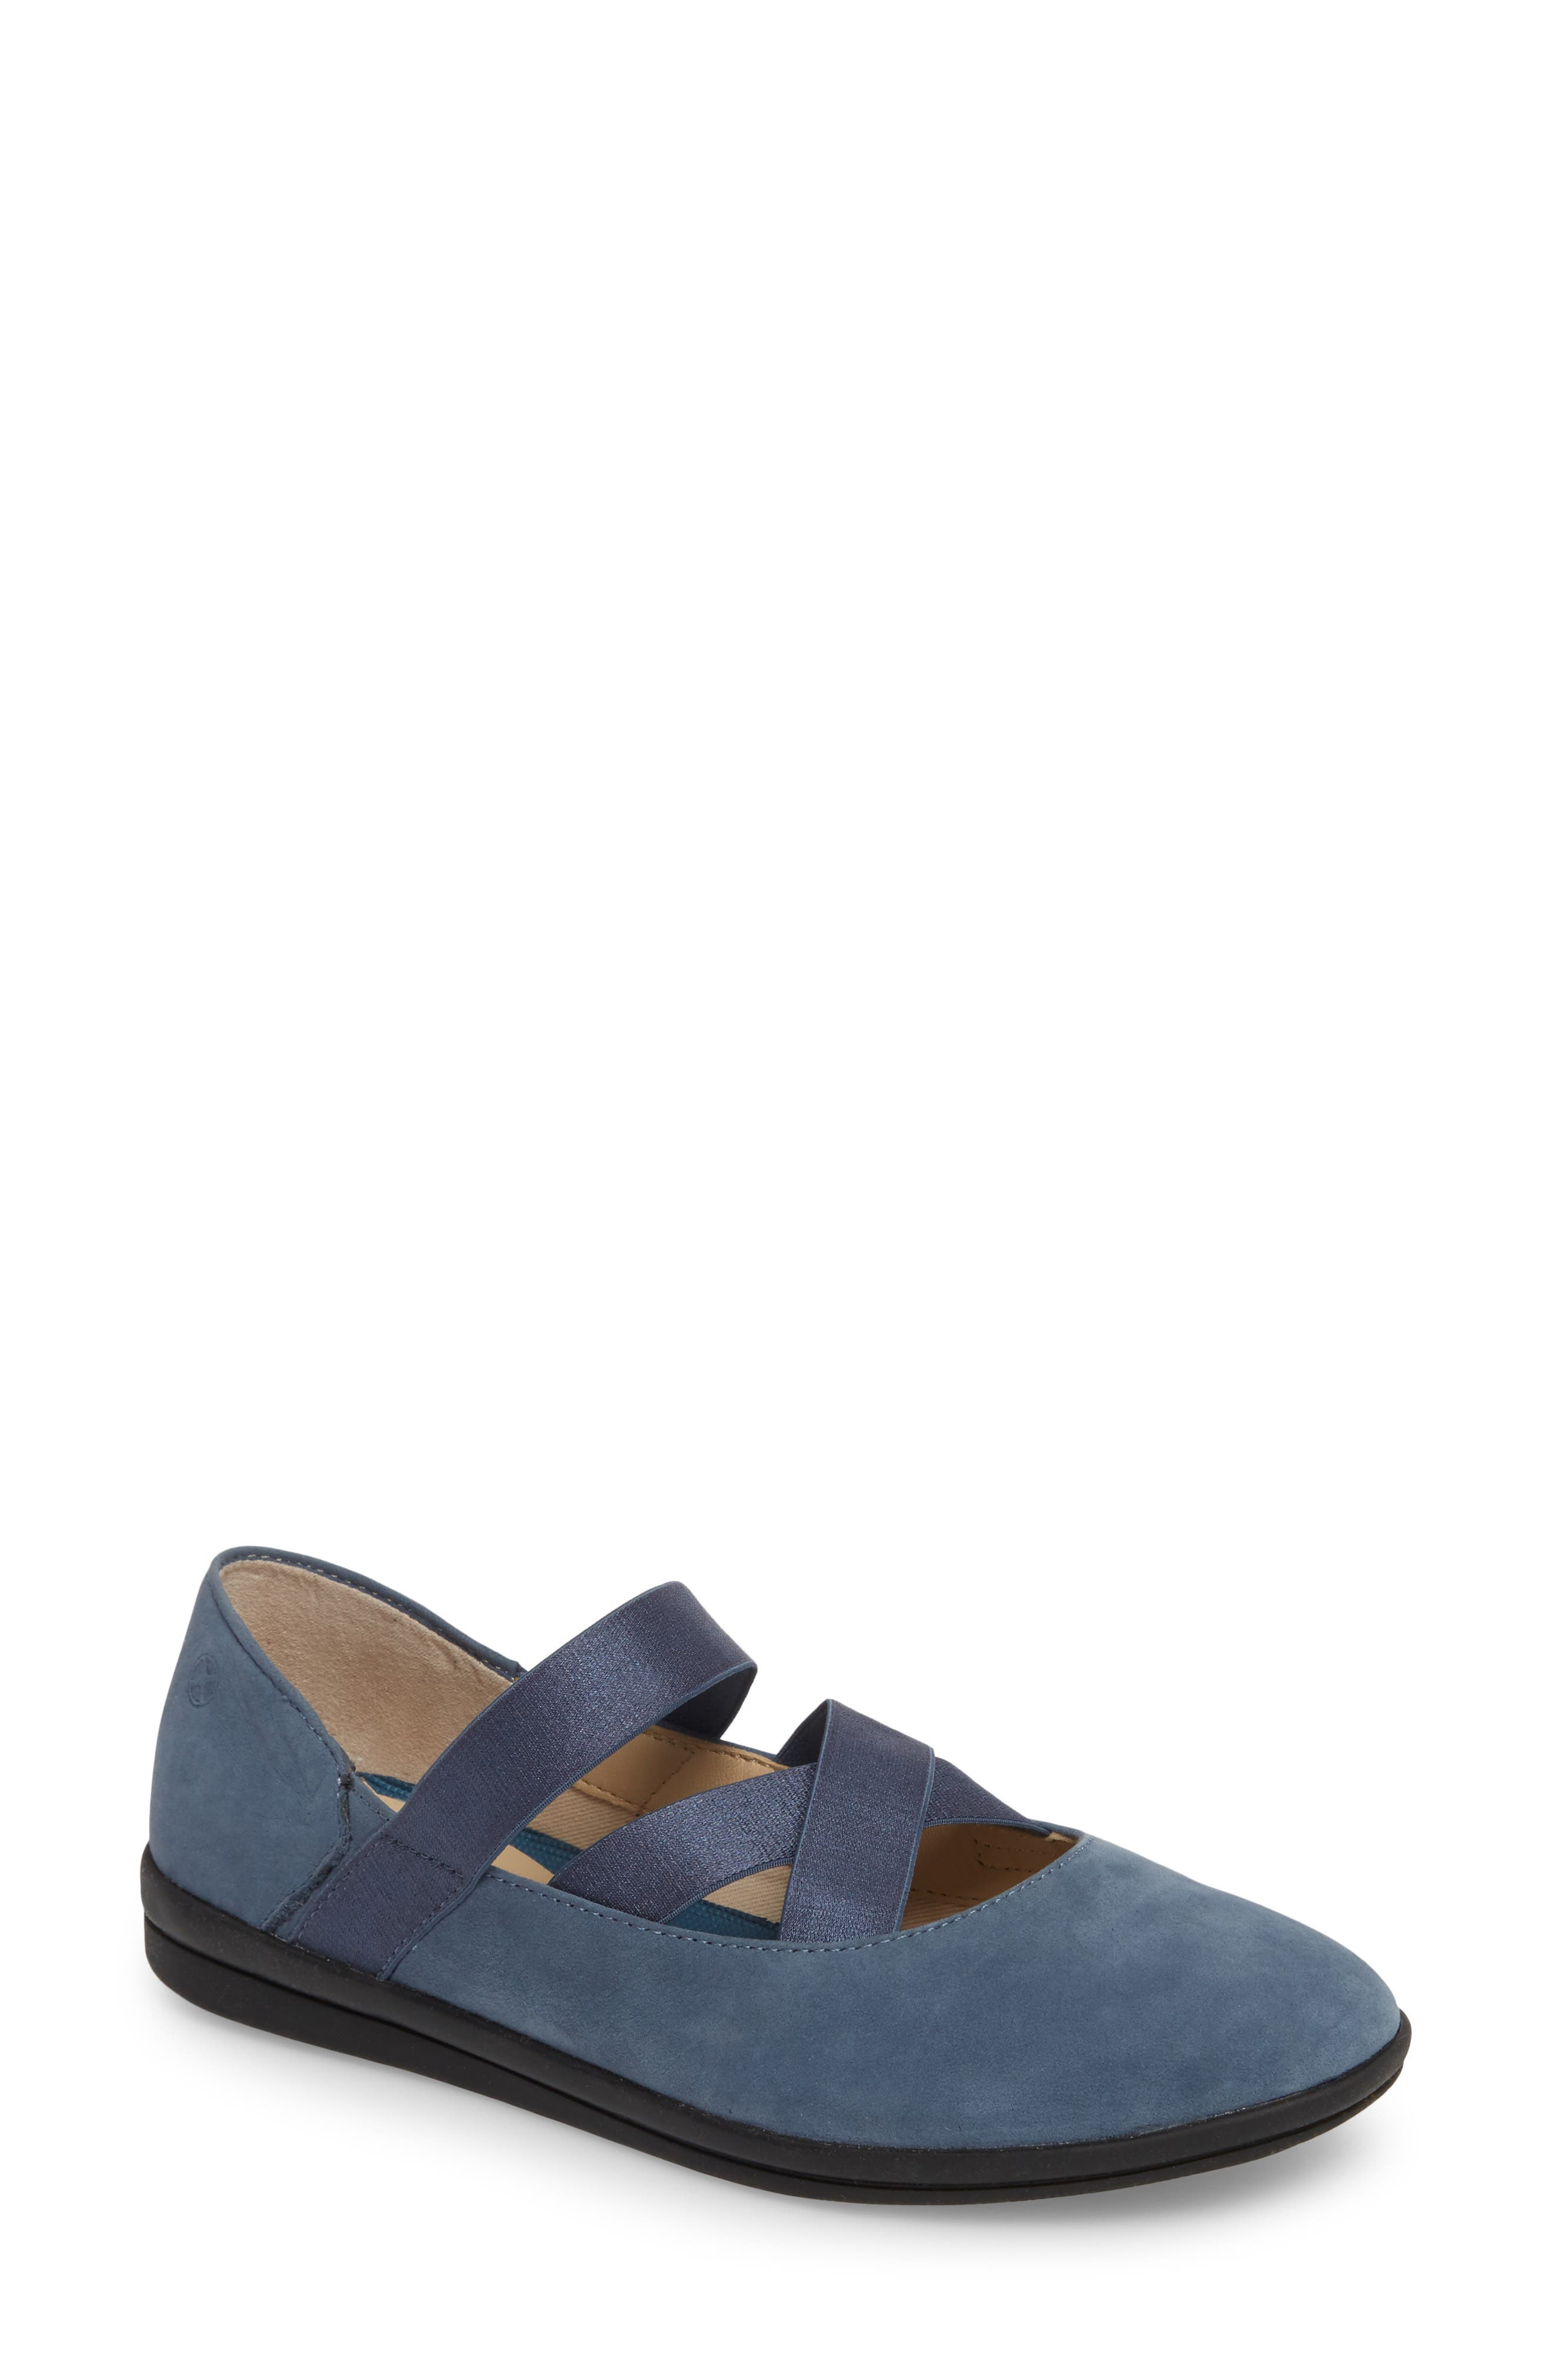 Meree Madrine Cross Strap Flat,                         Main,                         color, Vintage Indigo Nubuck Leather